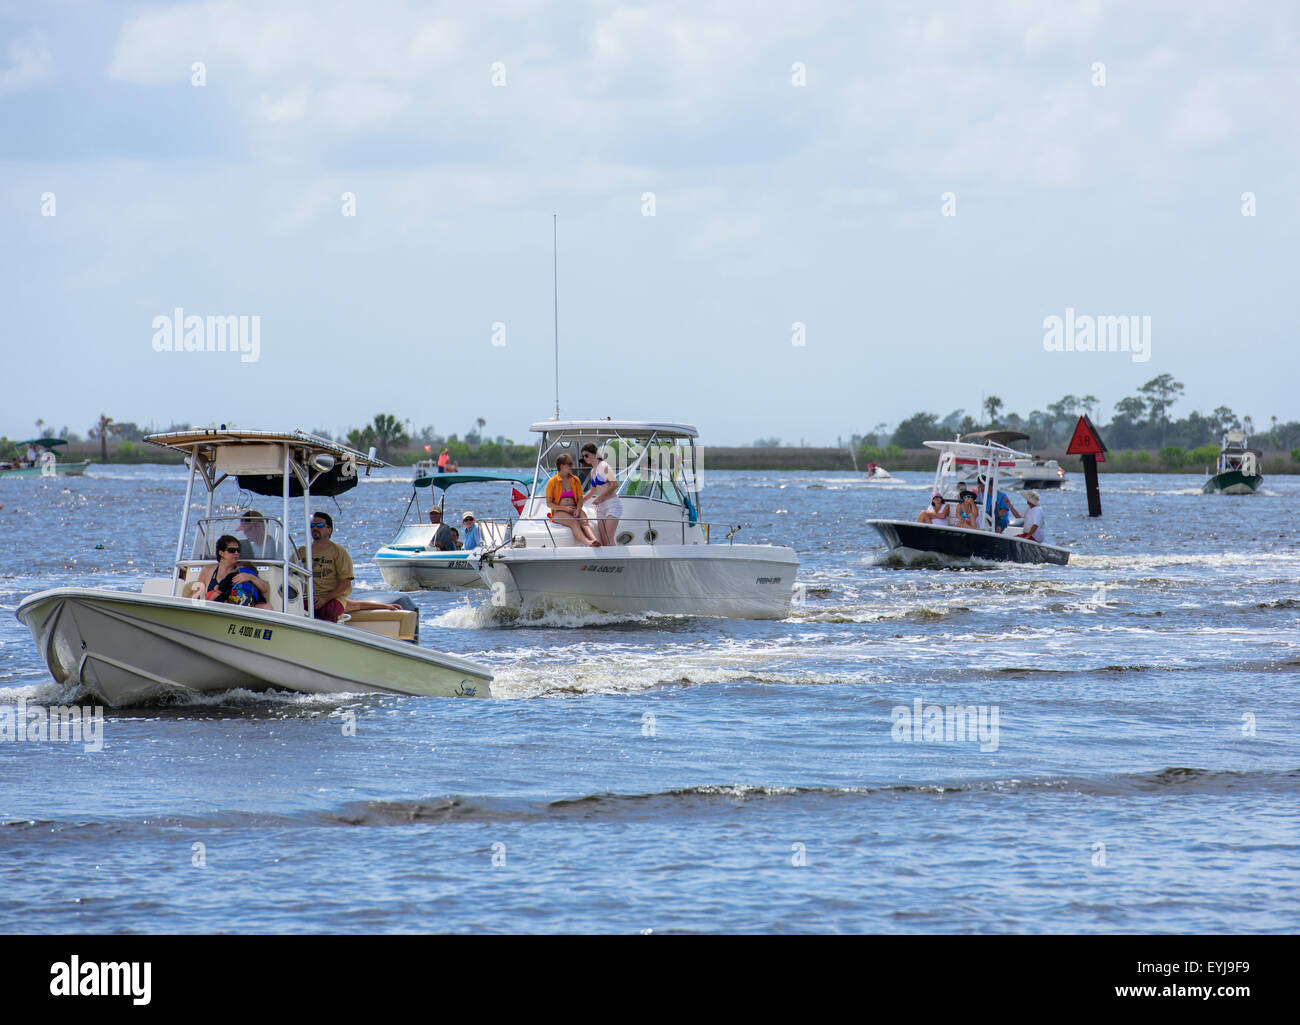 Recreational boat traffic on Steinhatchee River, Steimnhatchee, FL - Stock Image